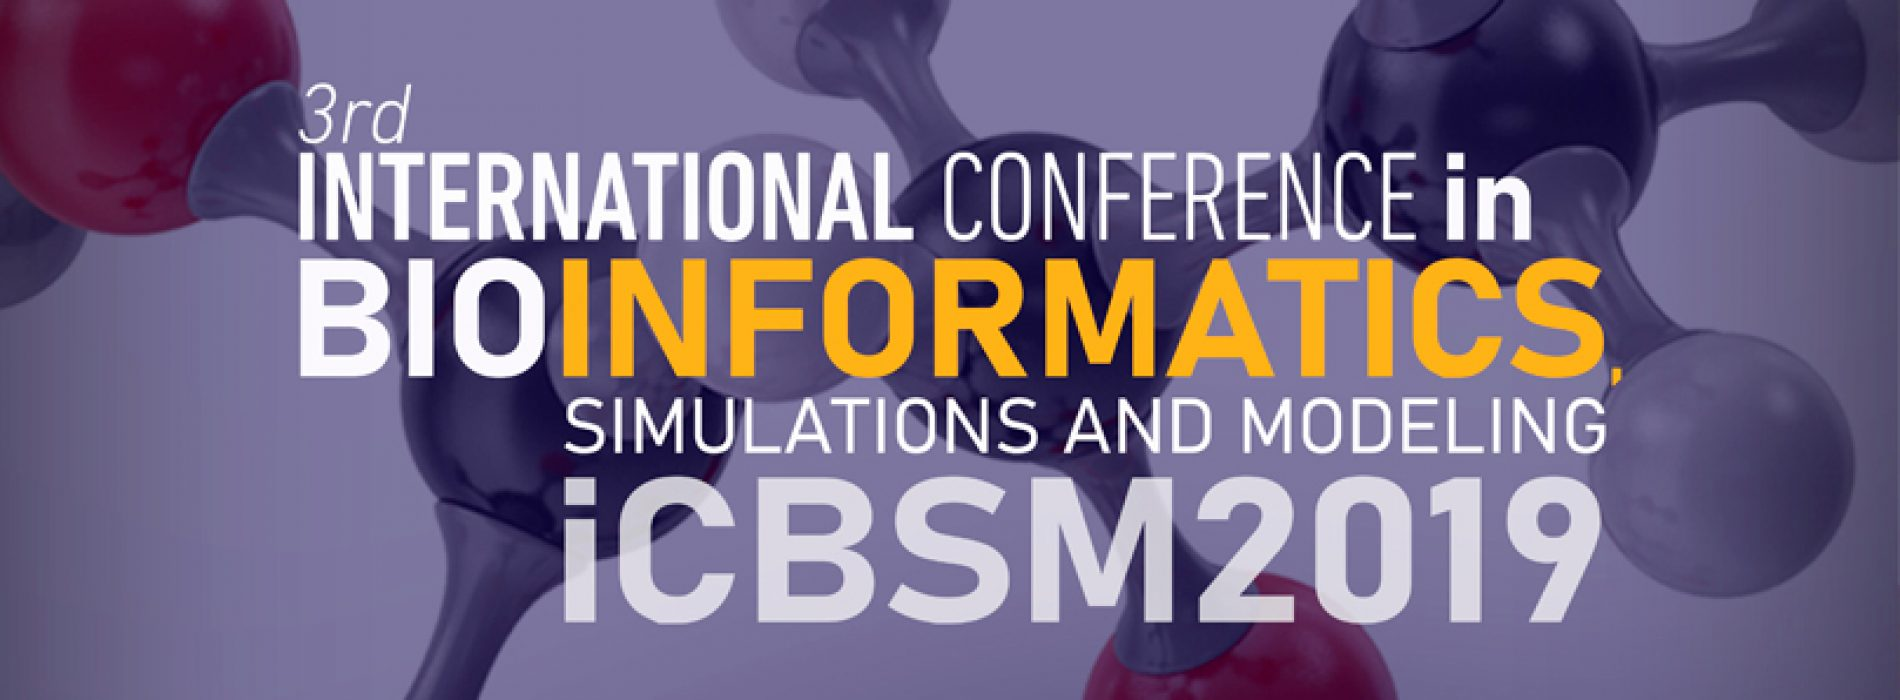 3rd International Conference in Bioinformatics Simulations and Modeling – ICBSM 2019